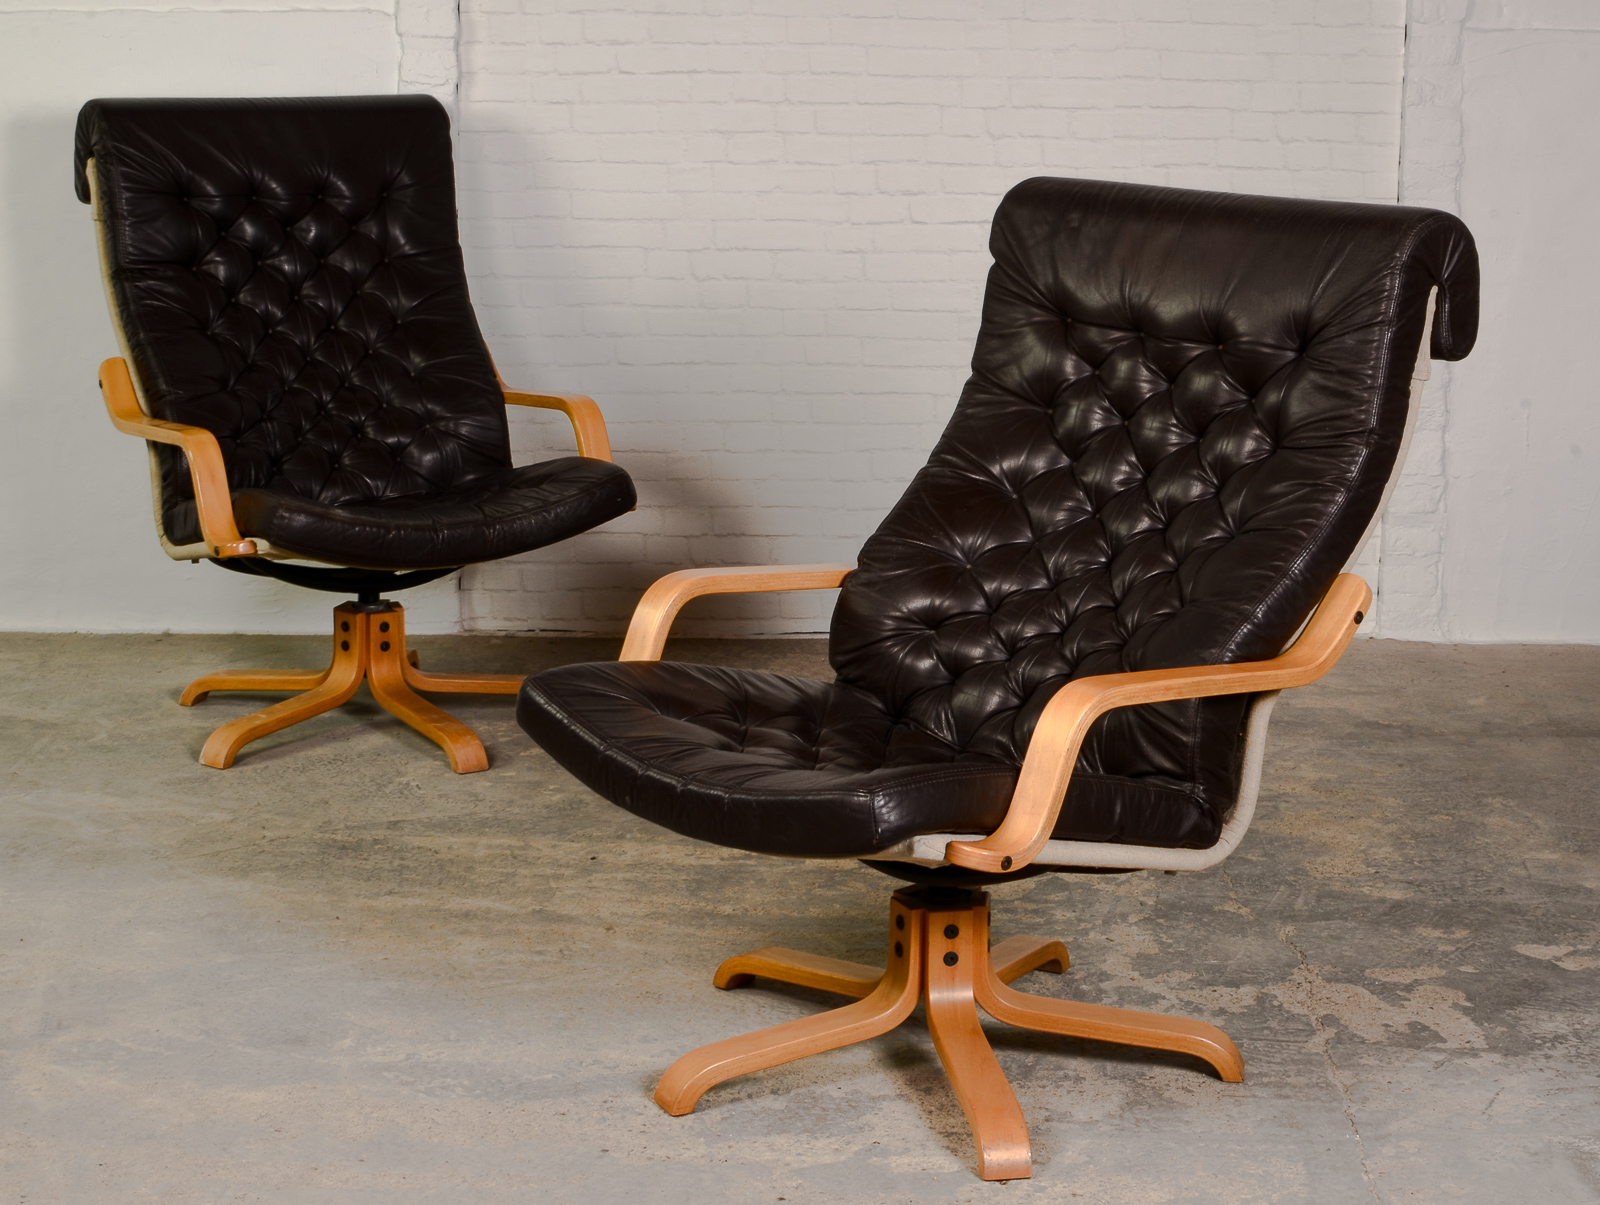 Pair Of Padded Leather Relax Swivel Chairs With Bended Wooden Frame